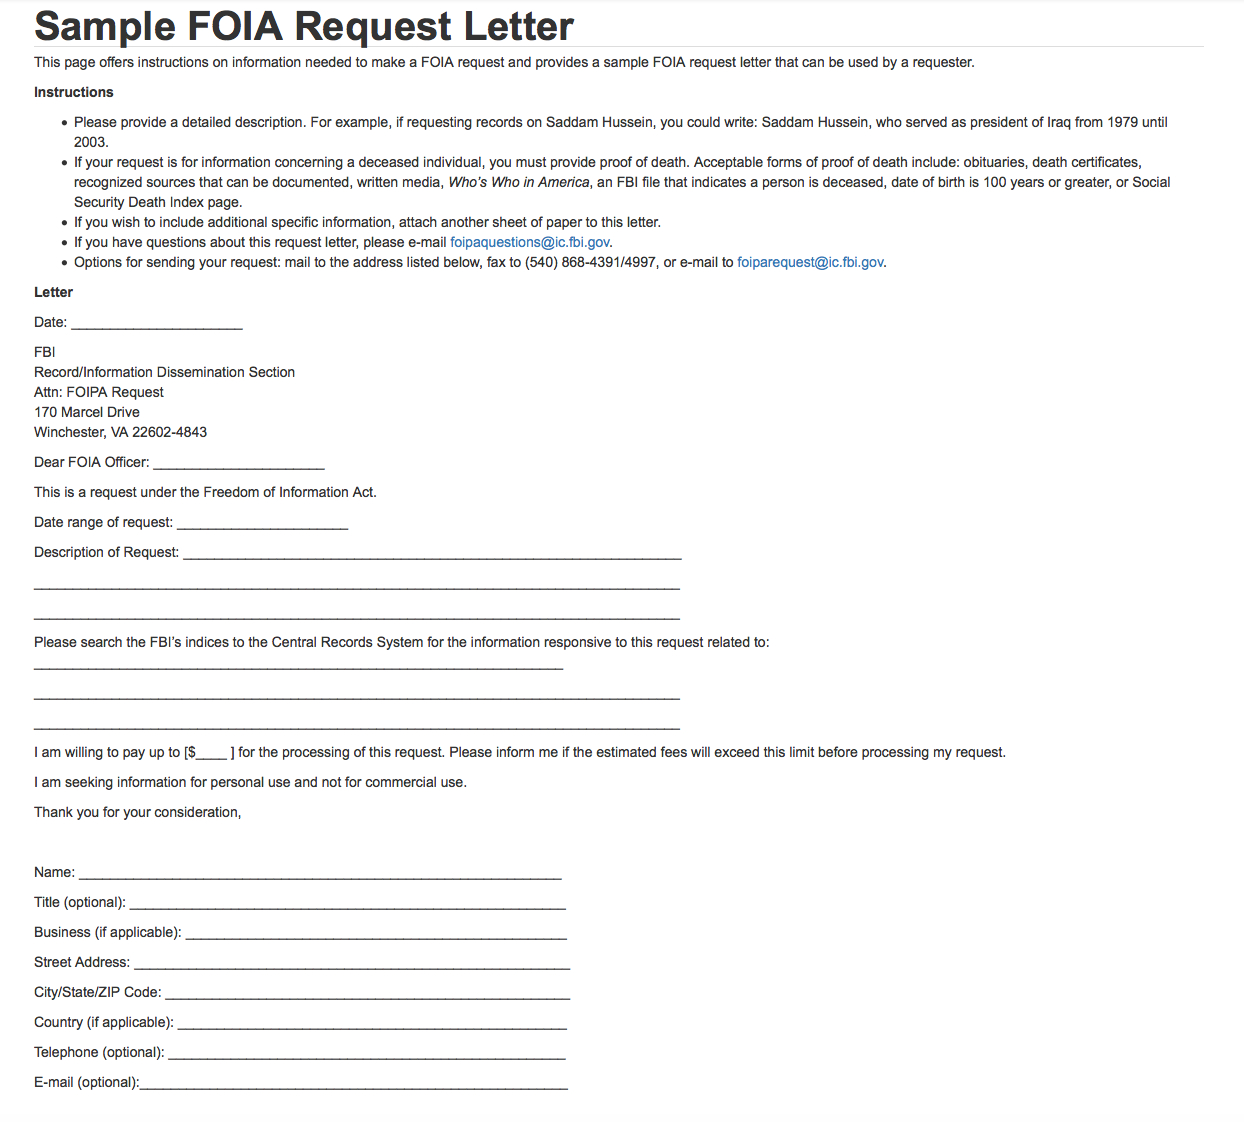 Escrow Demand Letter Template - Email Template to Request Information Email Template to Request